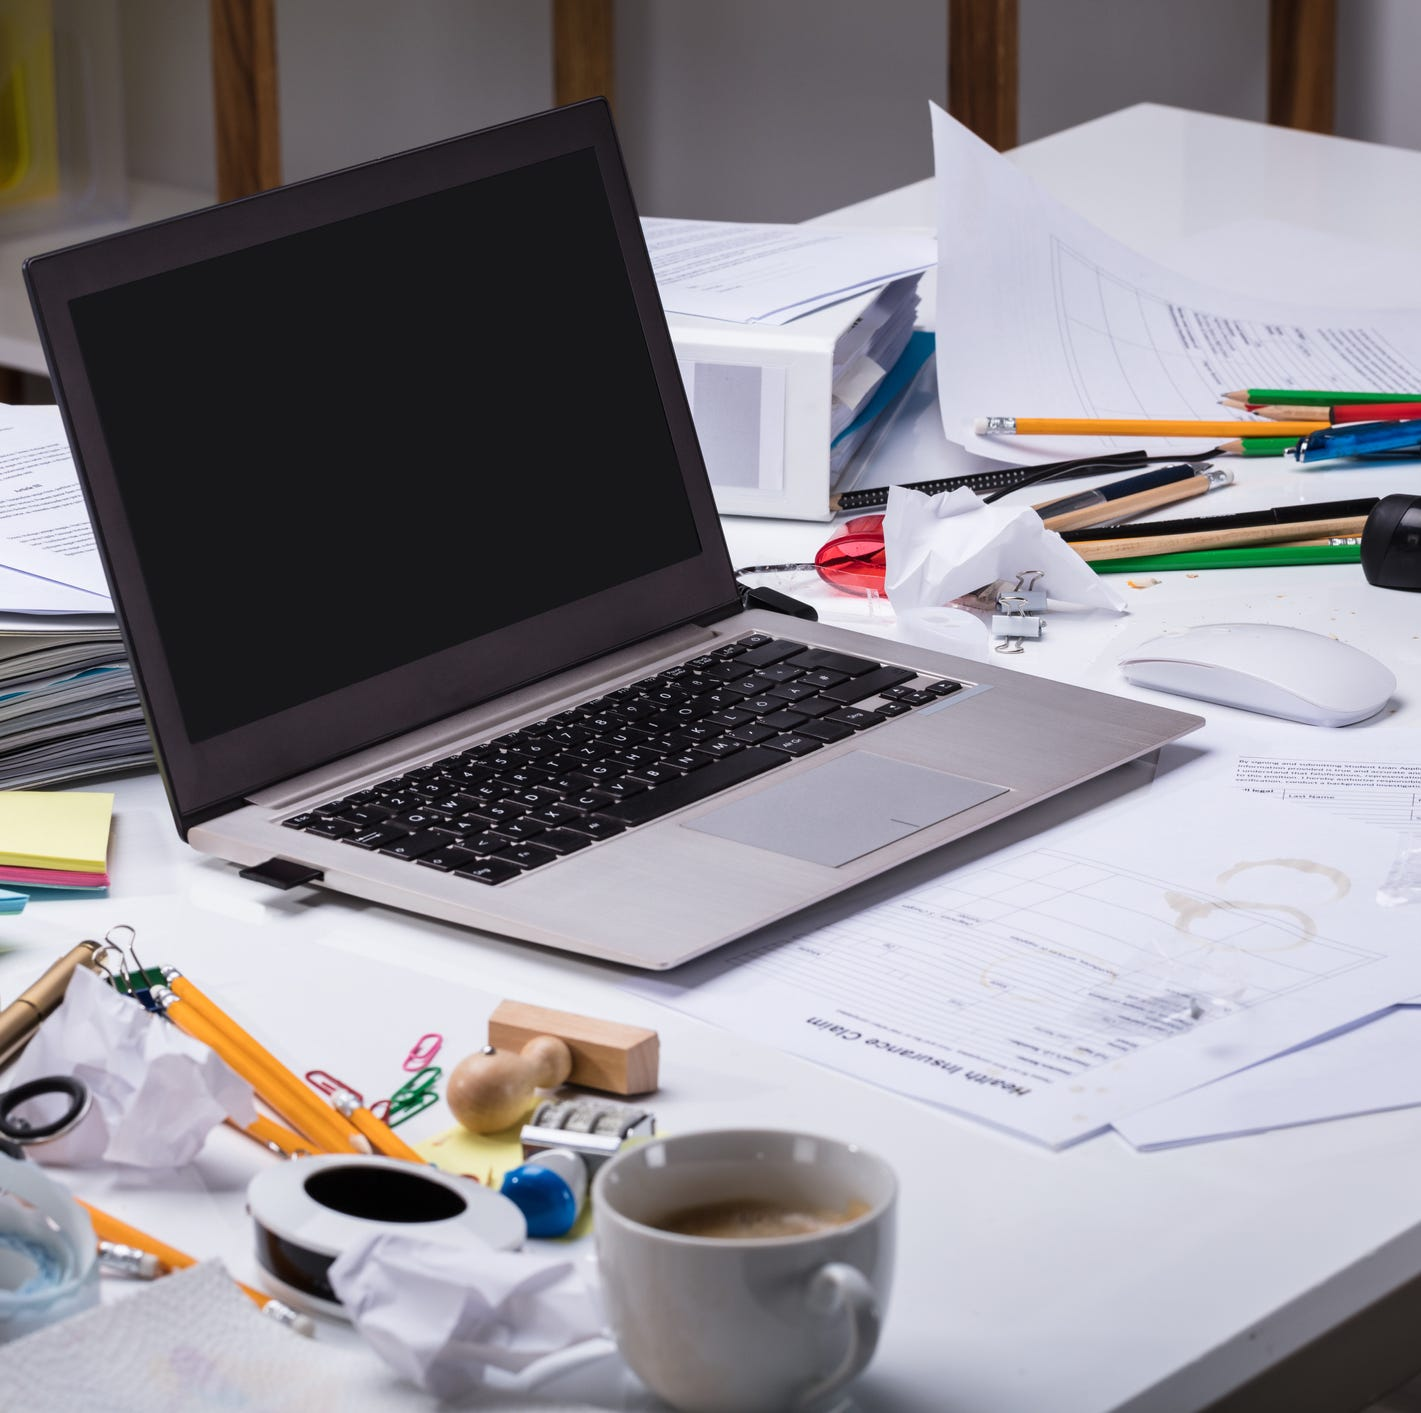 Suzy Fleming Leonard: A messy desk doesn't have to mean a messy life